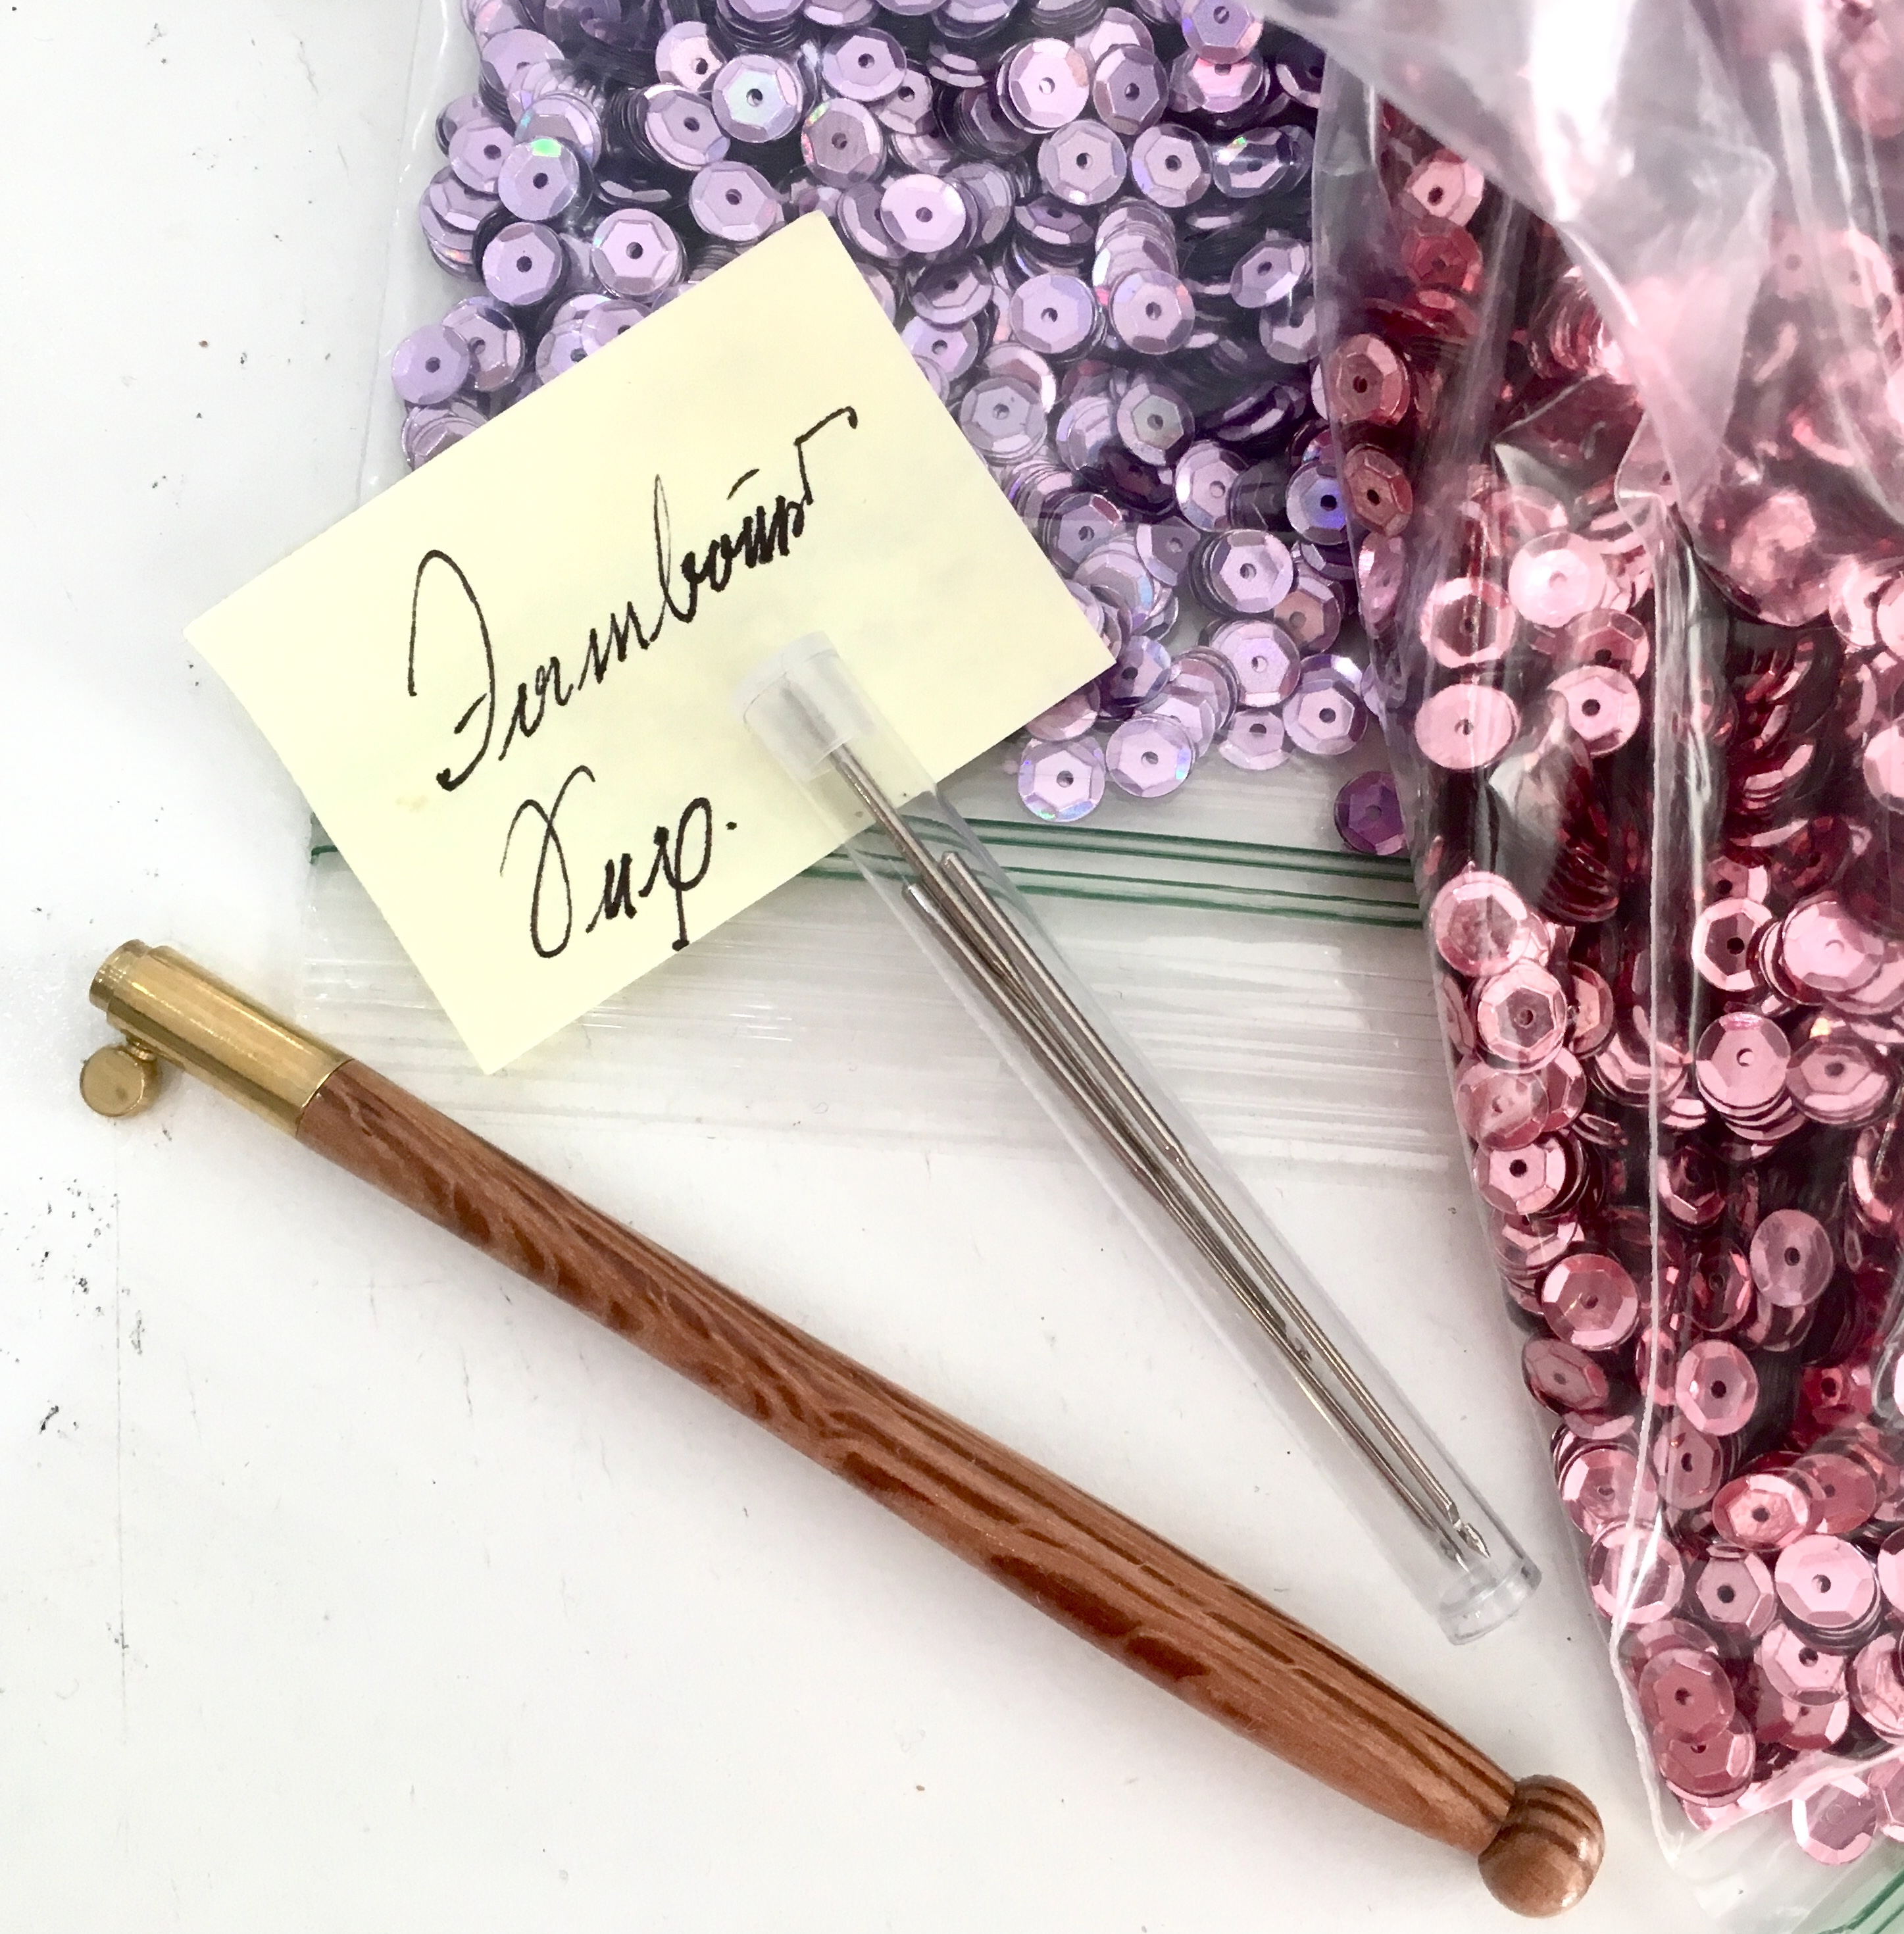 Bags of lilac and dusty rose colored sequins and a tambour hook with needles are waiting to be used in Nathan Perez's Tambour Embroidery Basics class at the Tchad workroom sewing studio in Chicago